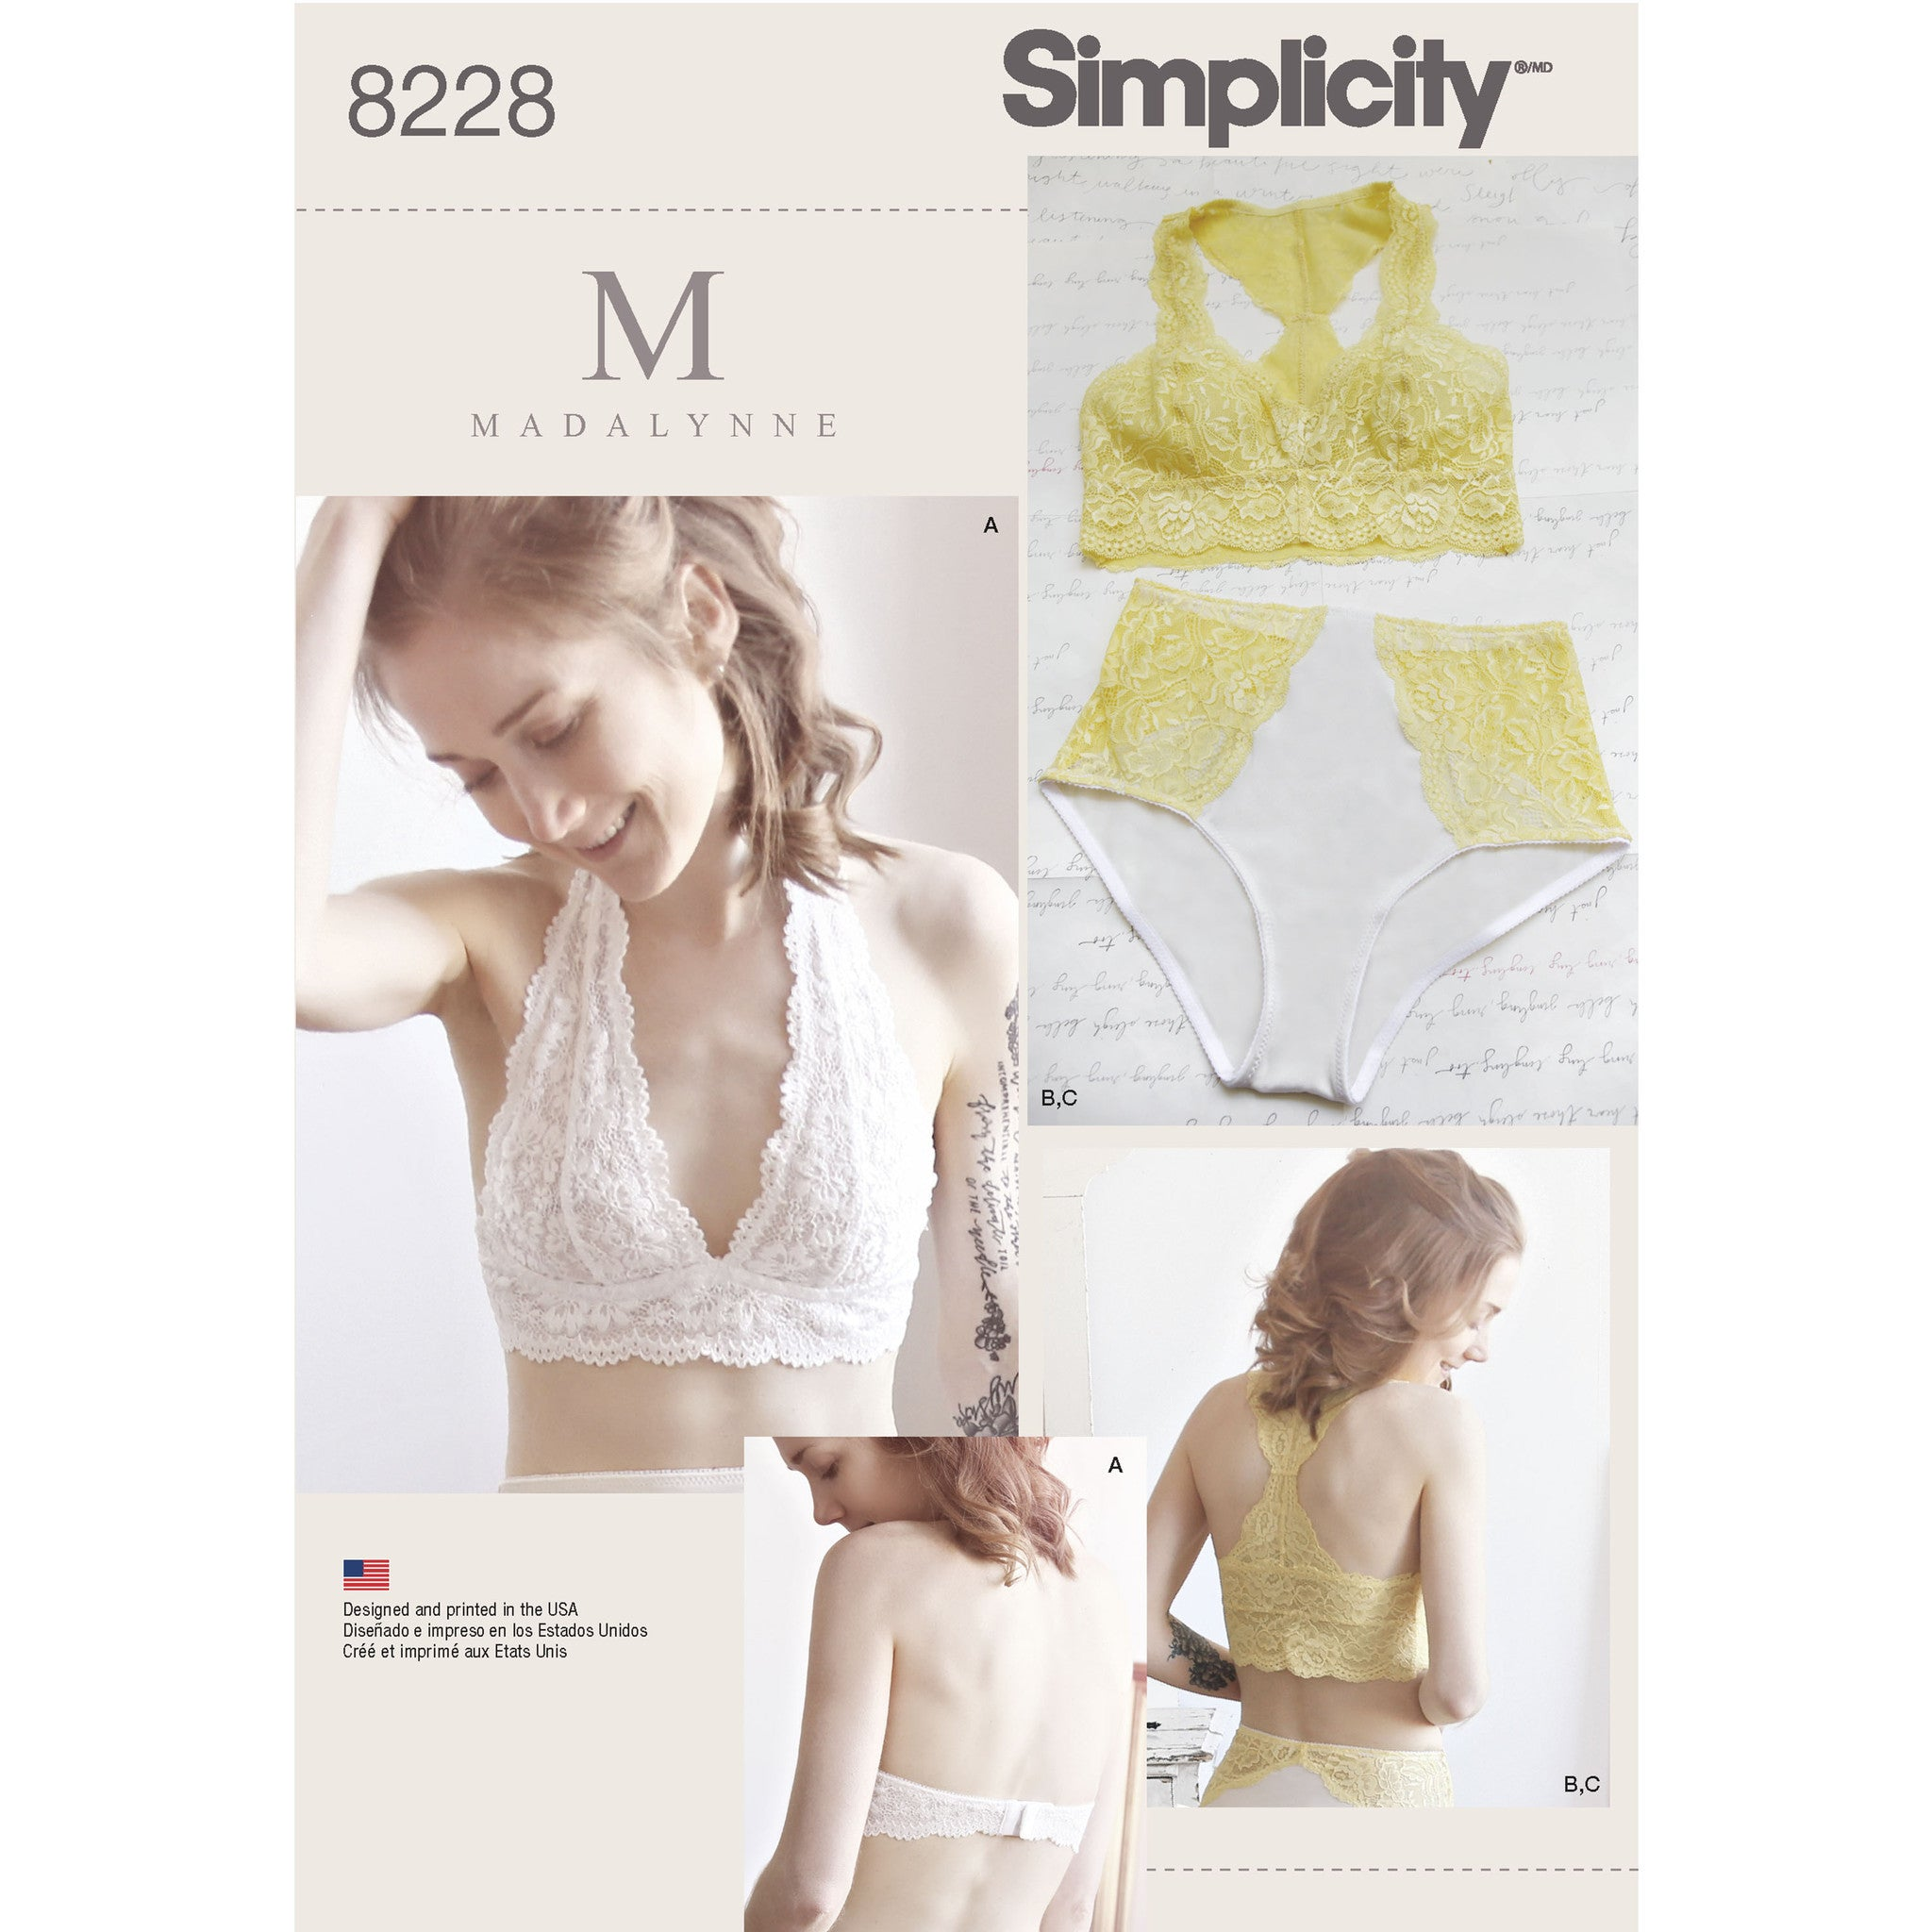 Simplicity S8228 Misses' Soft Cup Bras and Panties